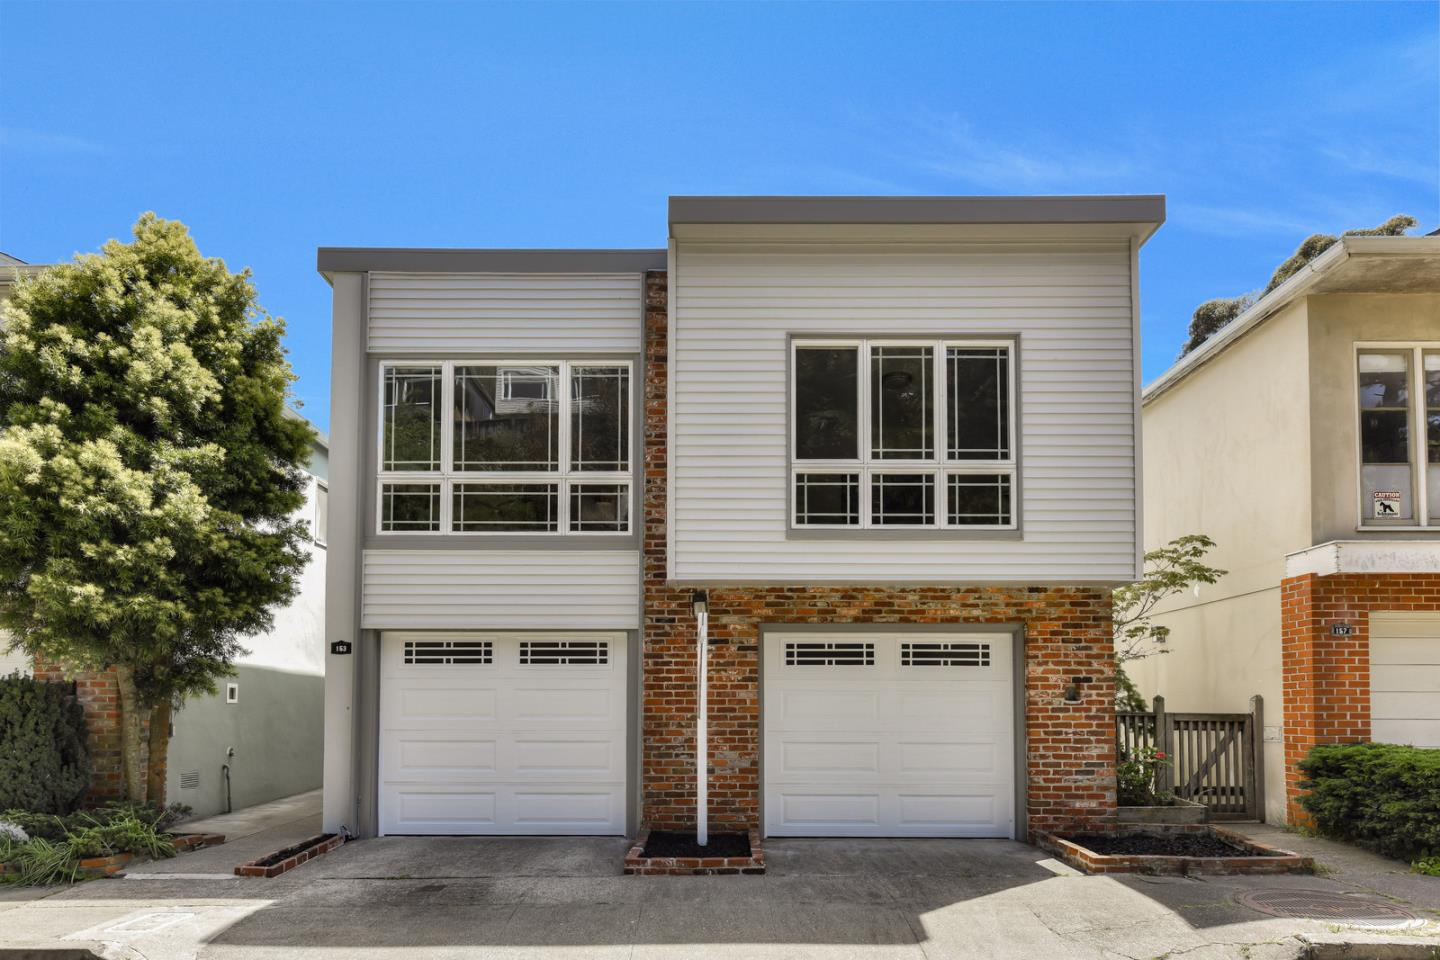 Image for 153 Warren Drive, <br>San Francisco 94131